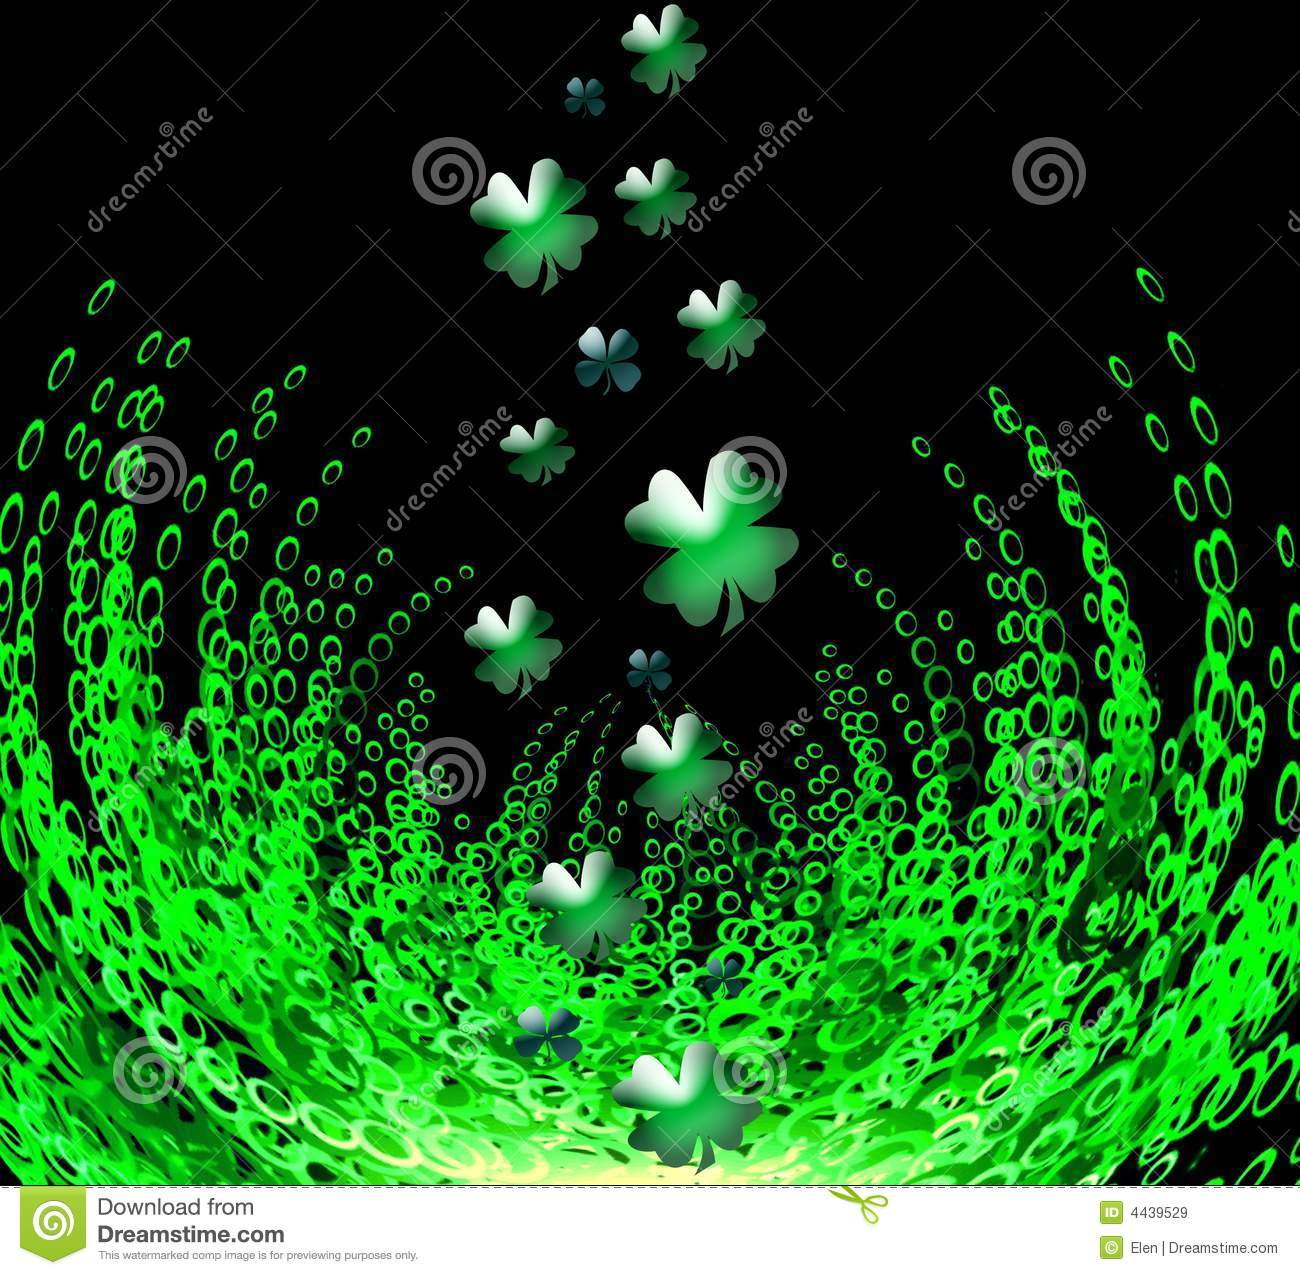 3d Shamrock Wallpaper St Patrick S Day Stock Illustration Image Of Patron